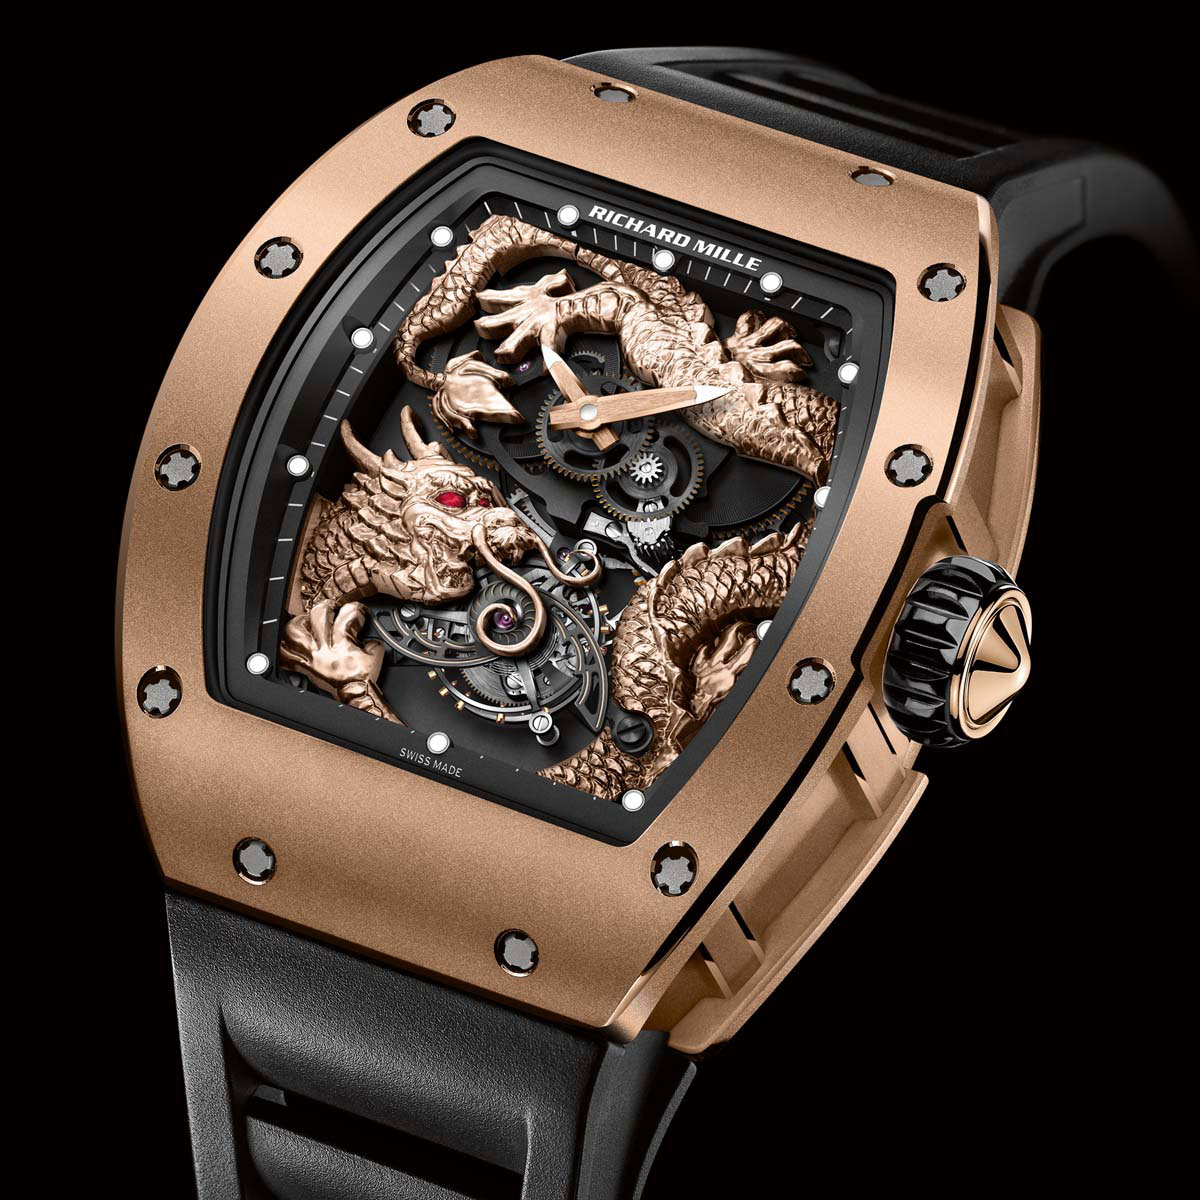 Dragon-Jackie-Chan-Luxury-Watch-by-Richard-Mille